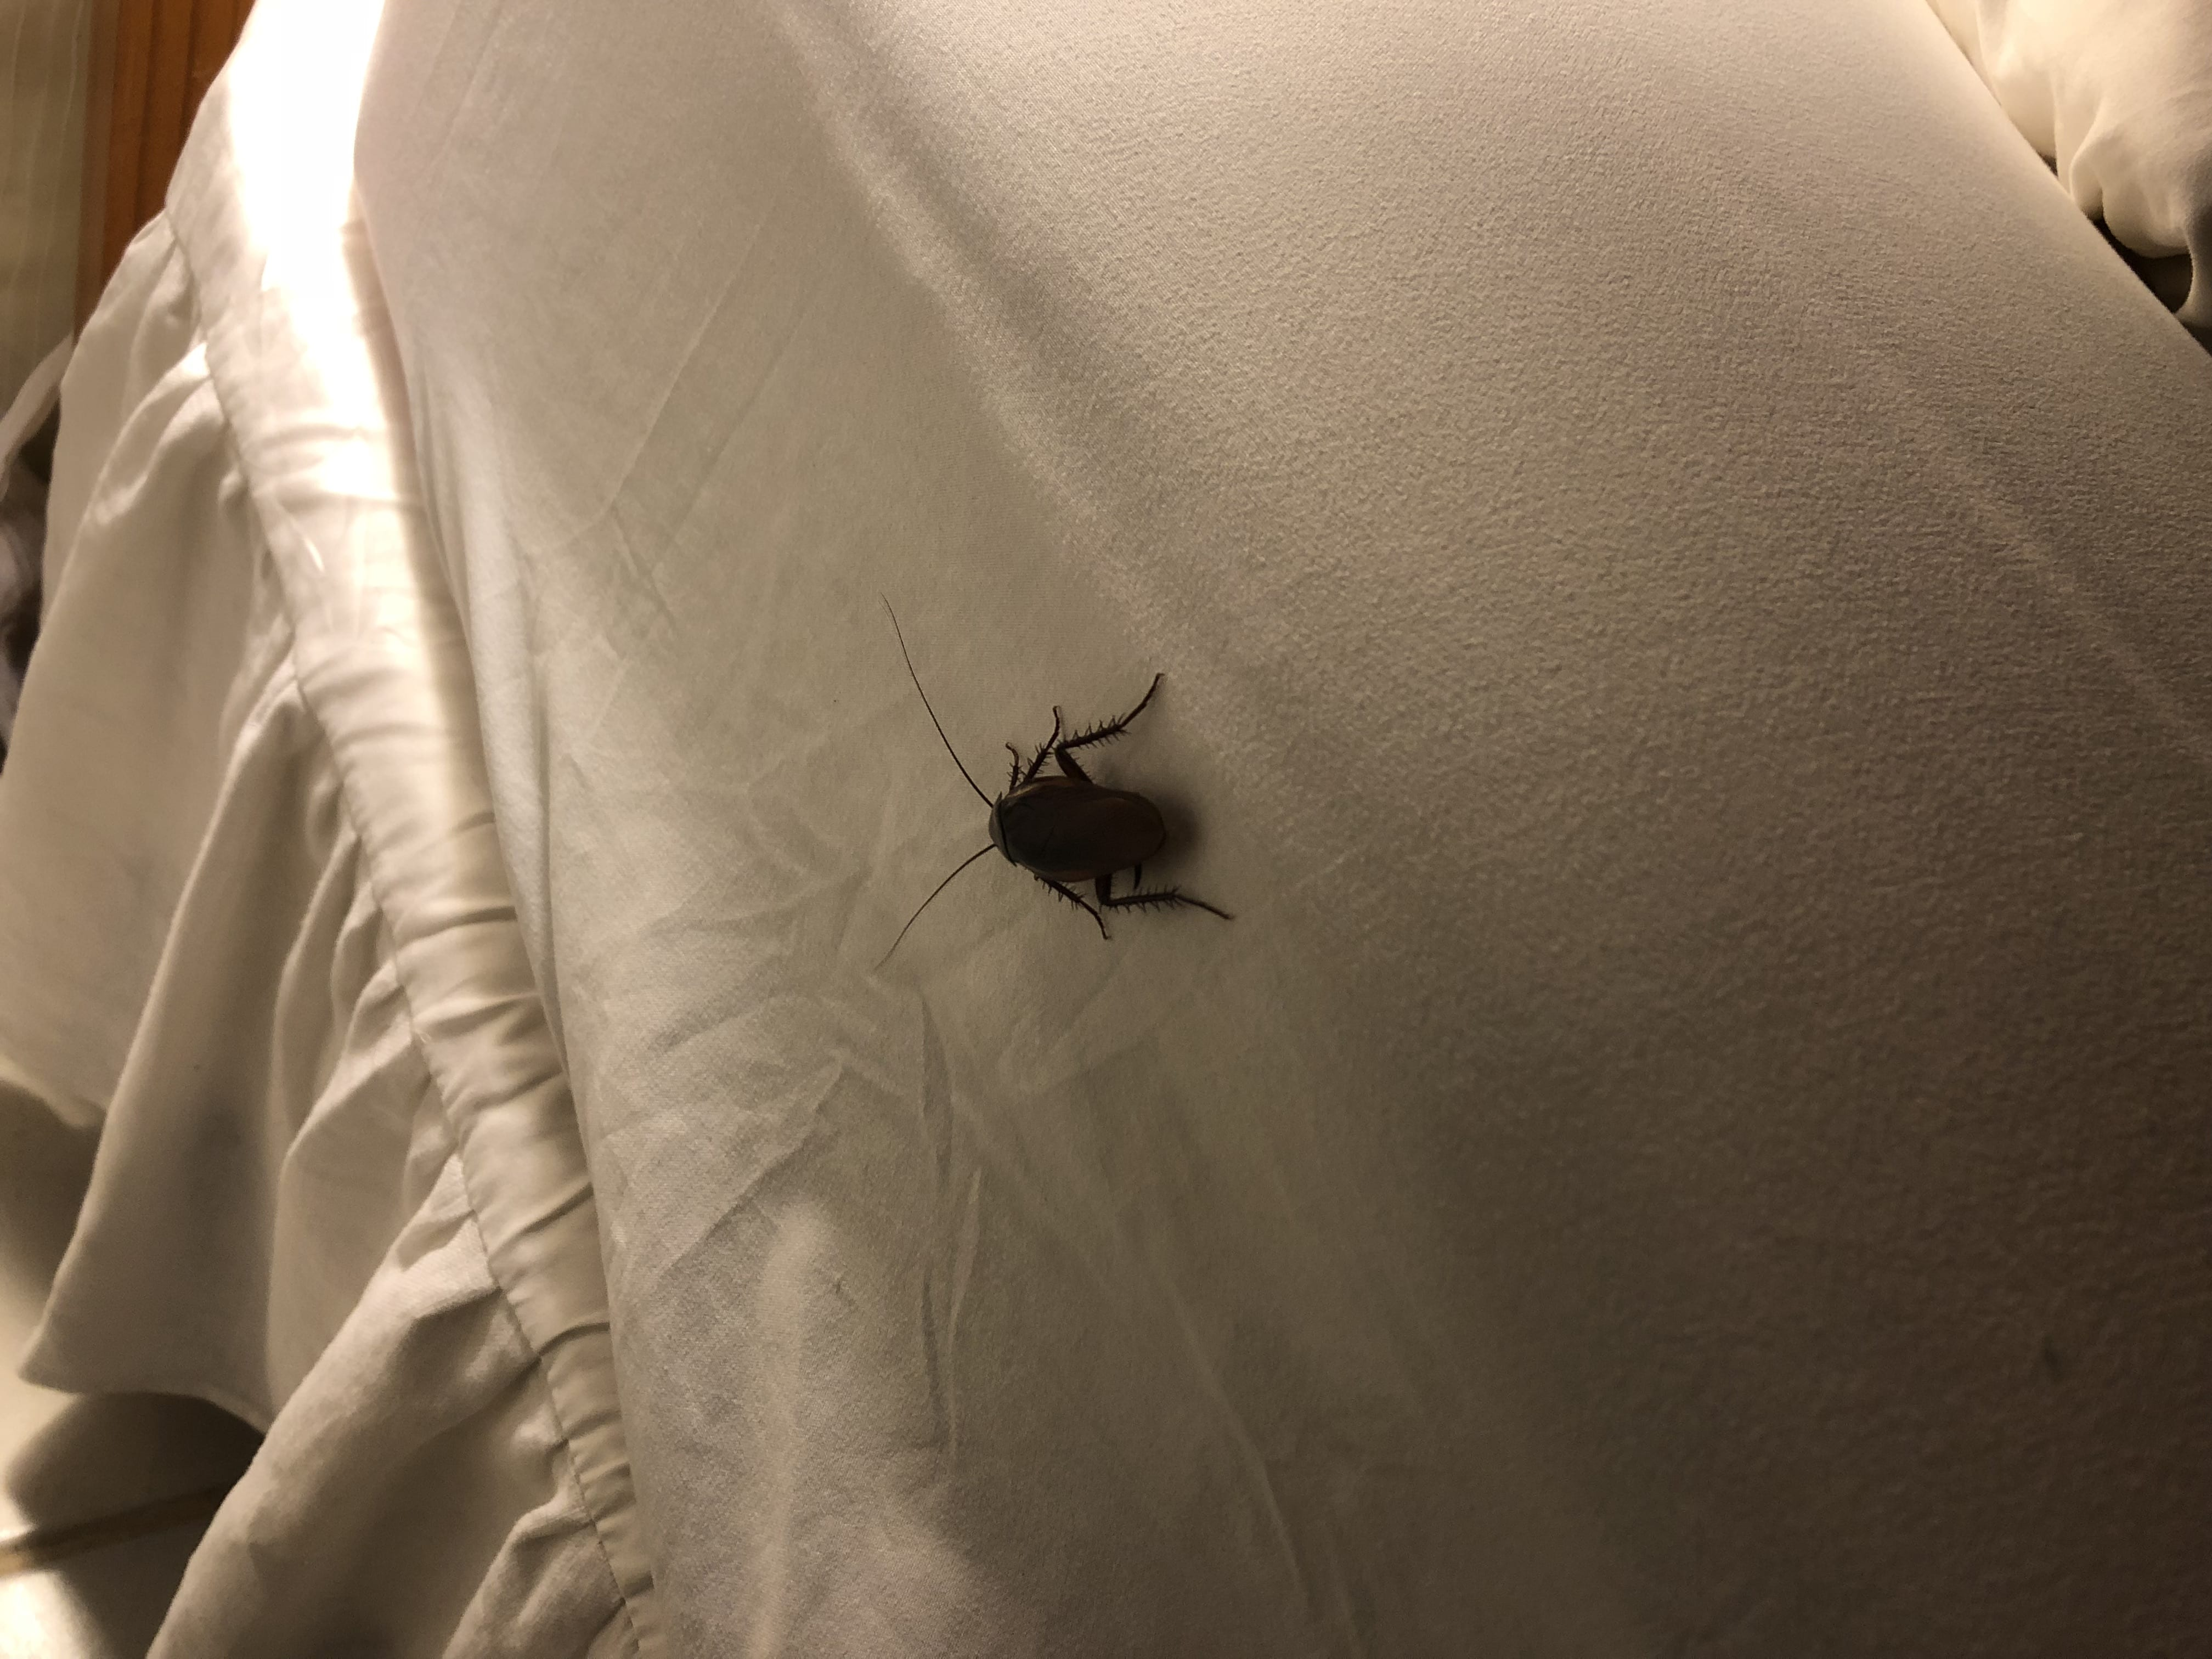 A cockroach decided to join me in bed at 4:30 am. I decided that was a great time to go read my Bible